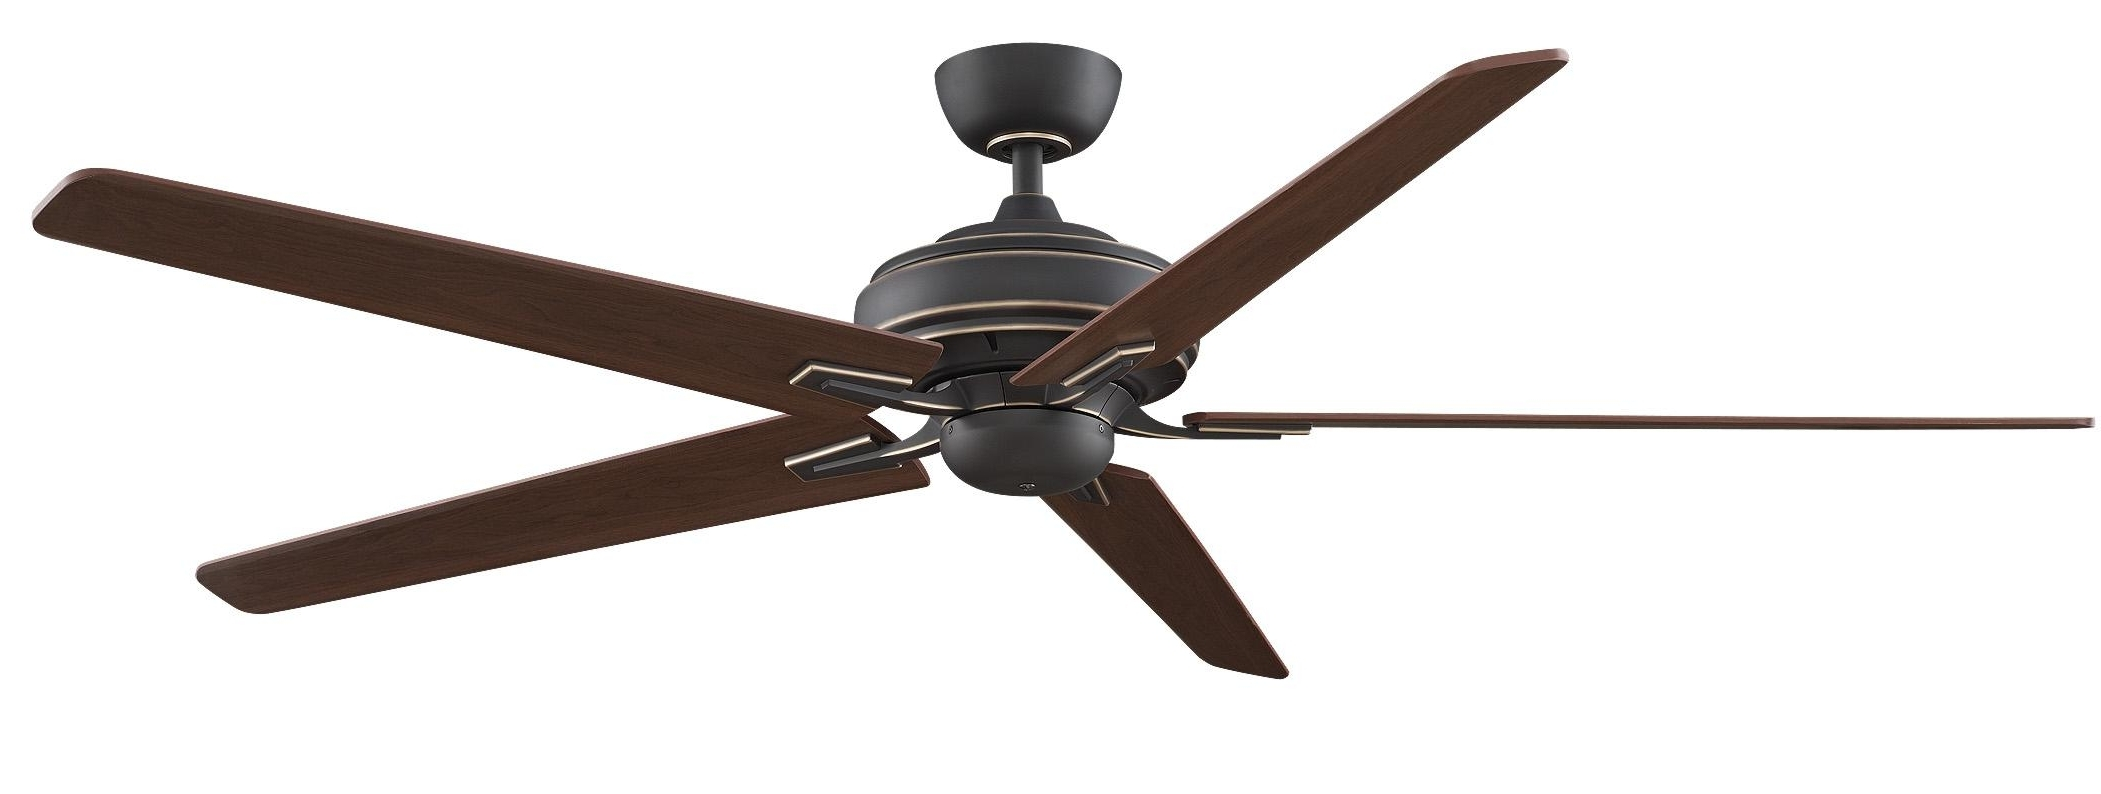 2018 Outdoor Ceiling Fans And Lights With Regard To Inch Outdoor Ceiling Fan With 60 Ceiling Fan With Light (Gallery 13 of 20)